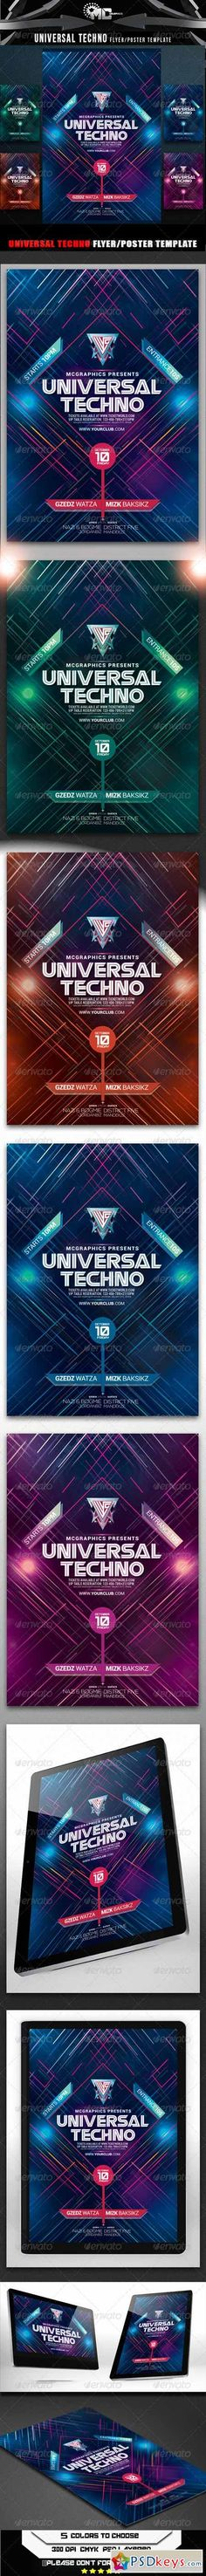 Universal Techno Flyer Poster - ss flyer club simple line space neon